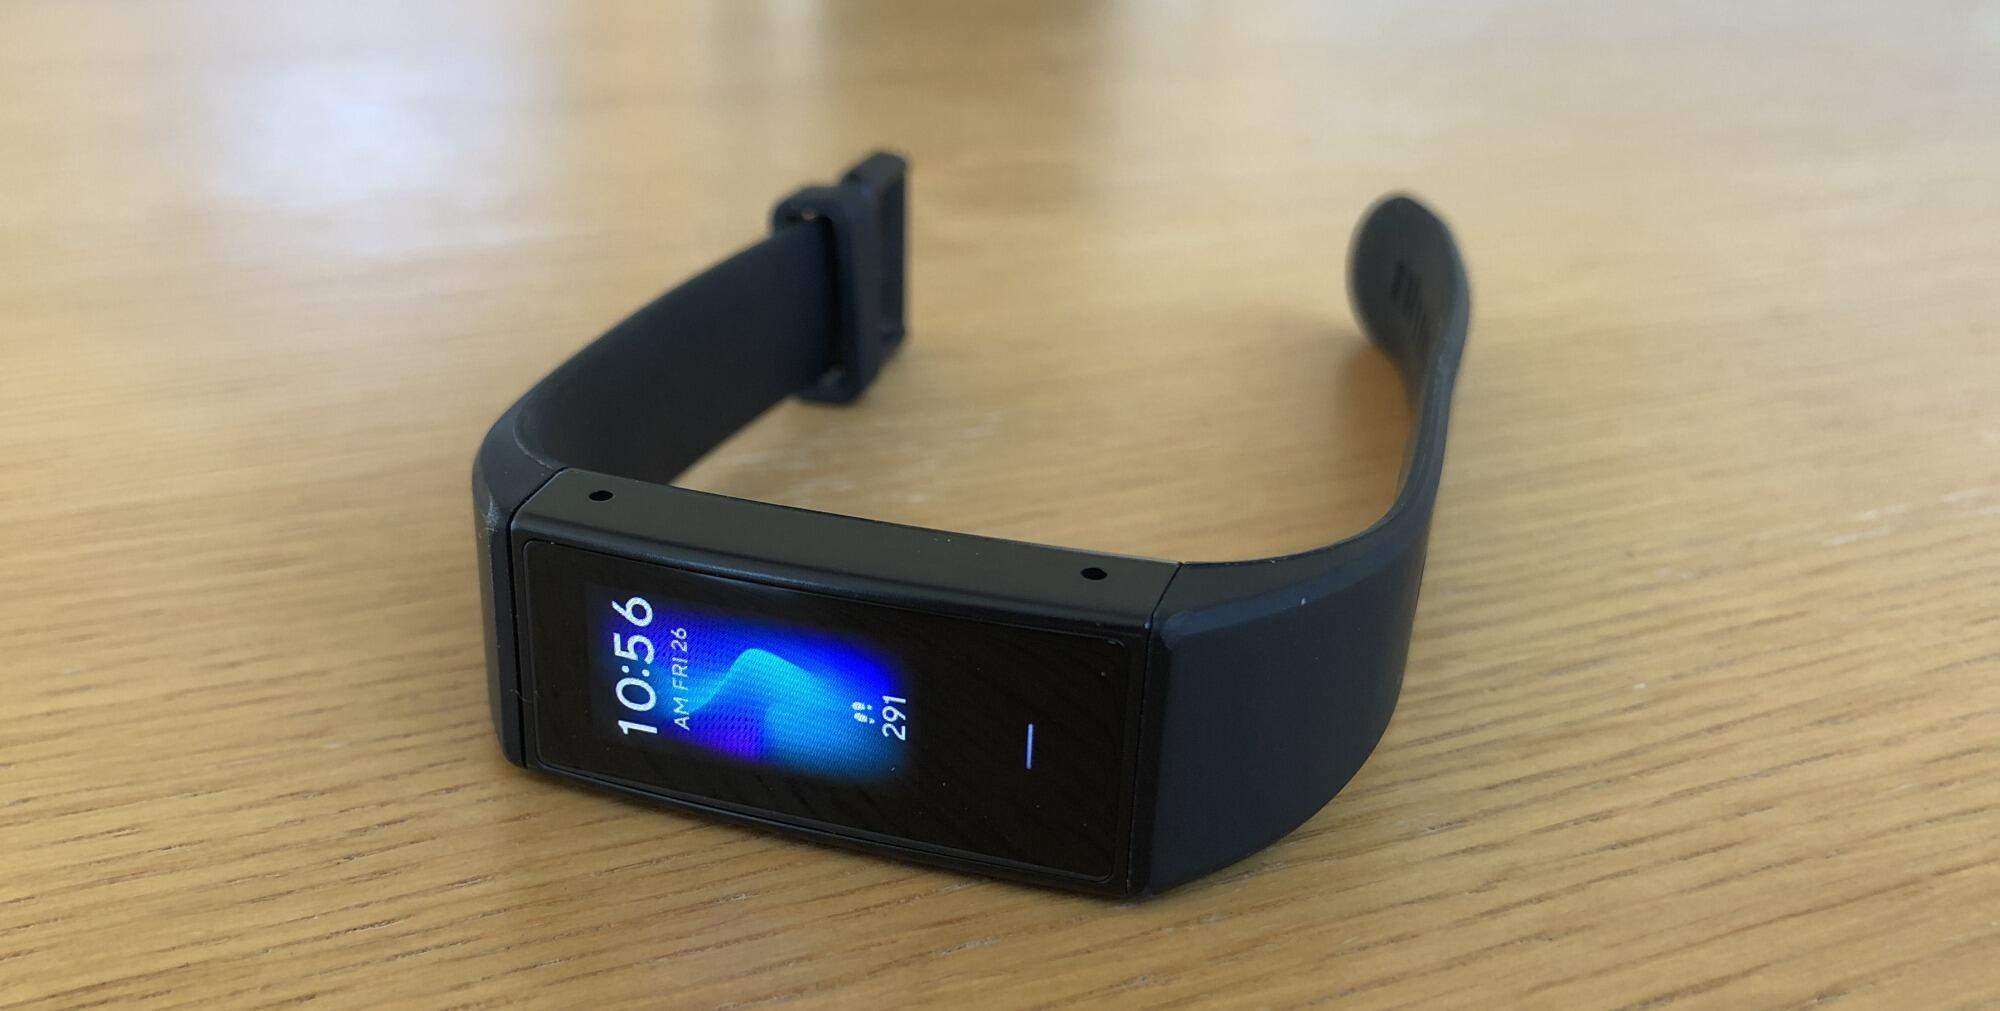 wyze-band-on-table